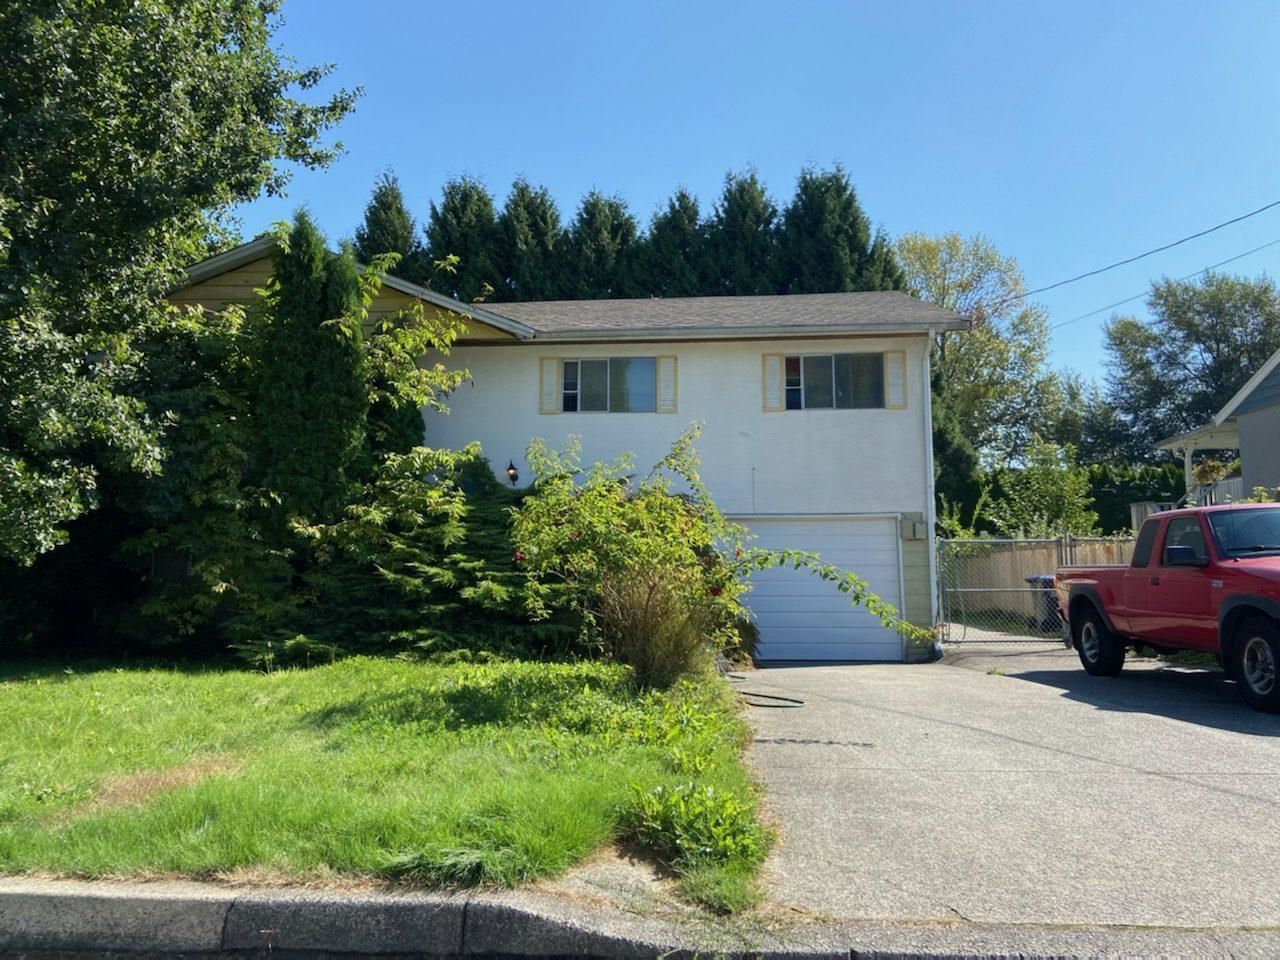 """Main Photo: 3450 HANDLEY Crescent in Port Coquitlam: Lincoln Park PQ House for sale in """"Lincoln Park"""" : MLS®# R2614317"""